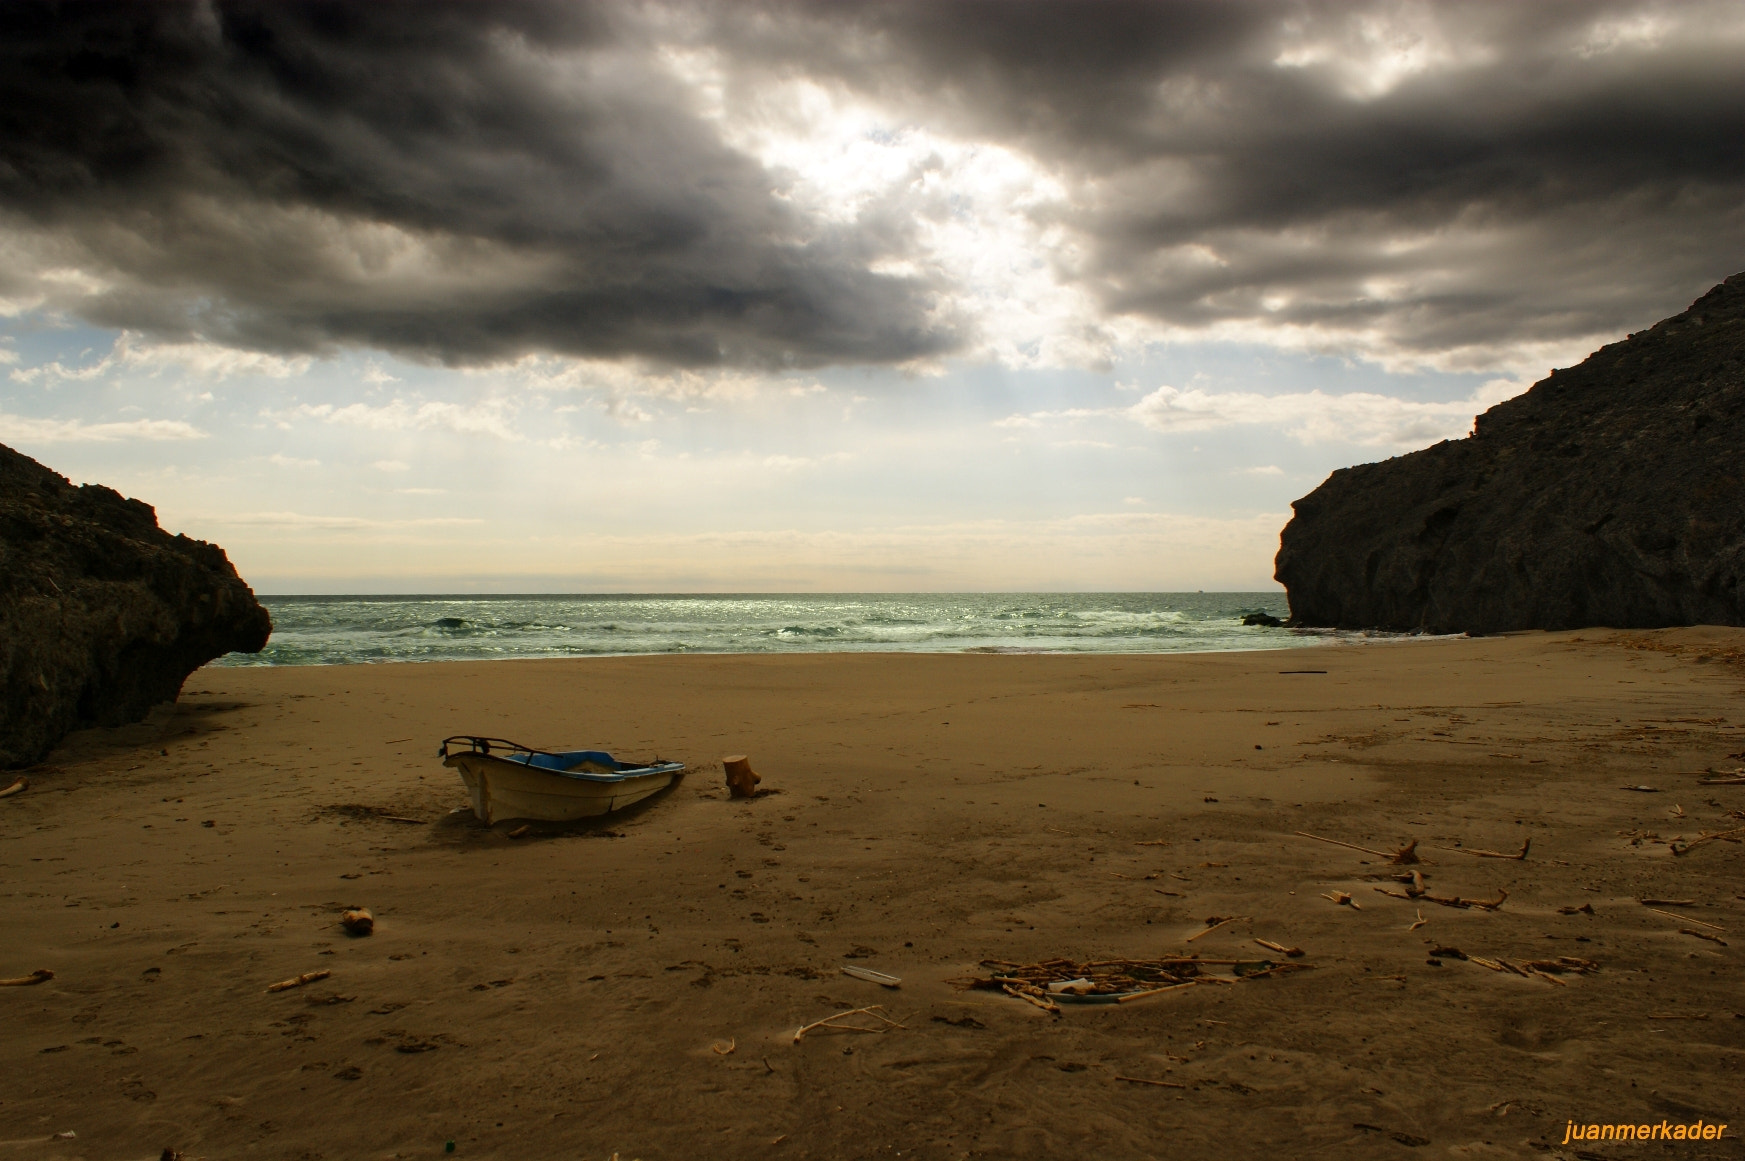 Photograph Cala Príncipe by juan merkader on 500px